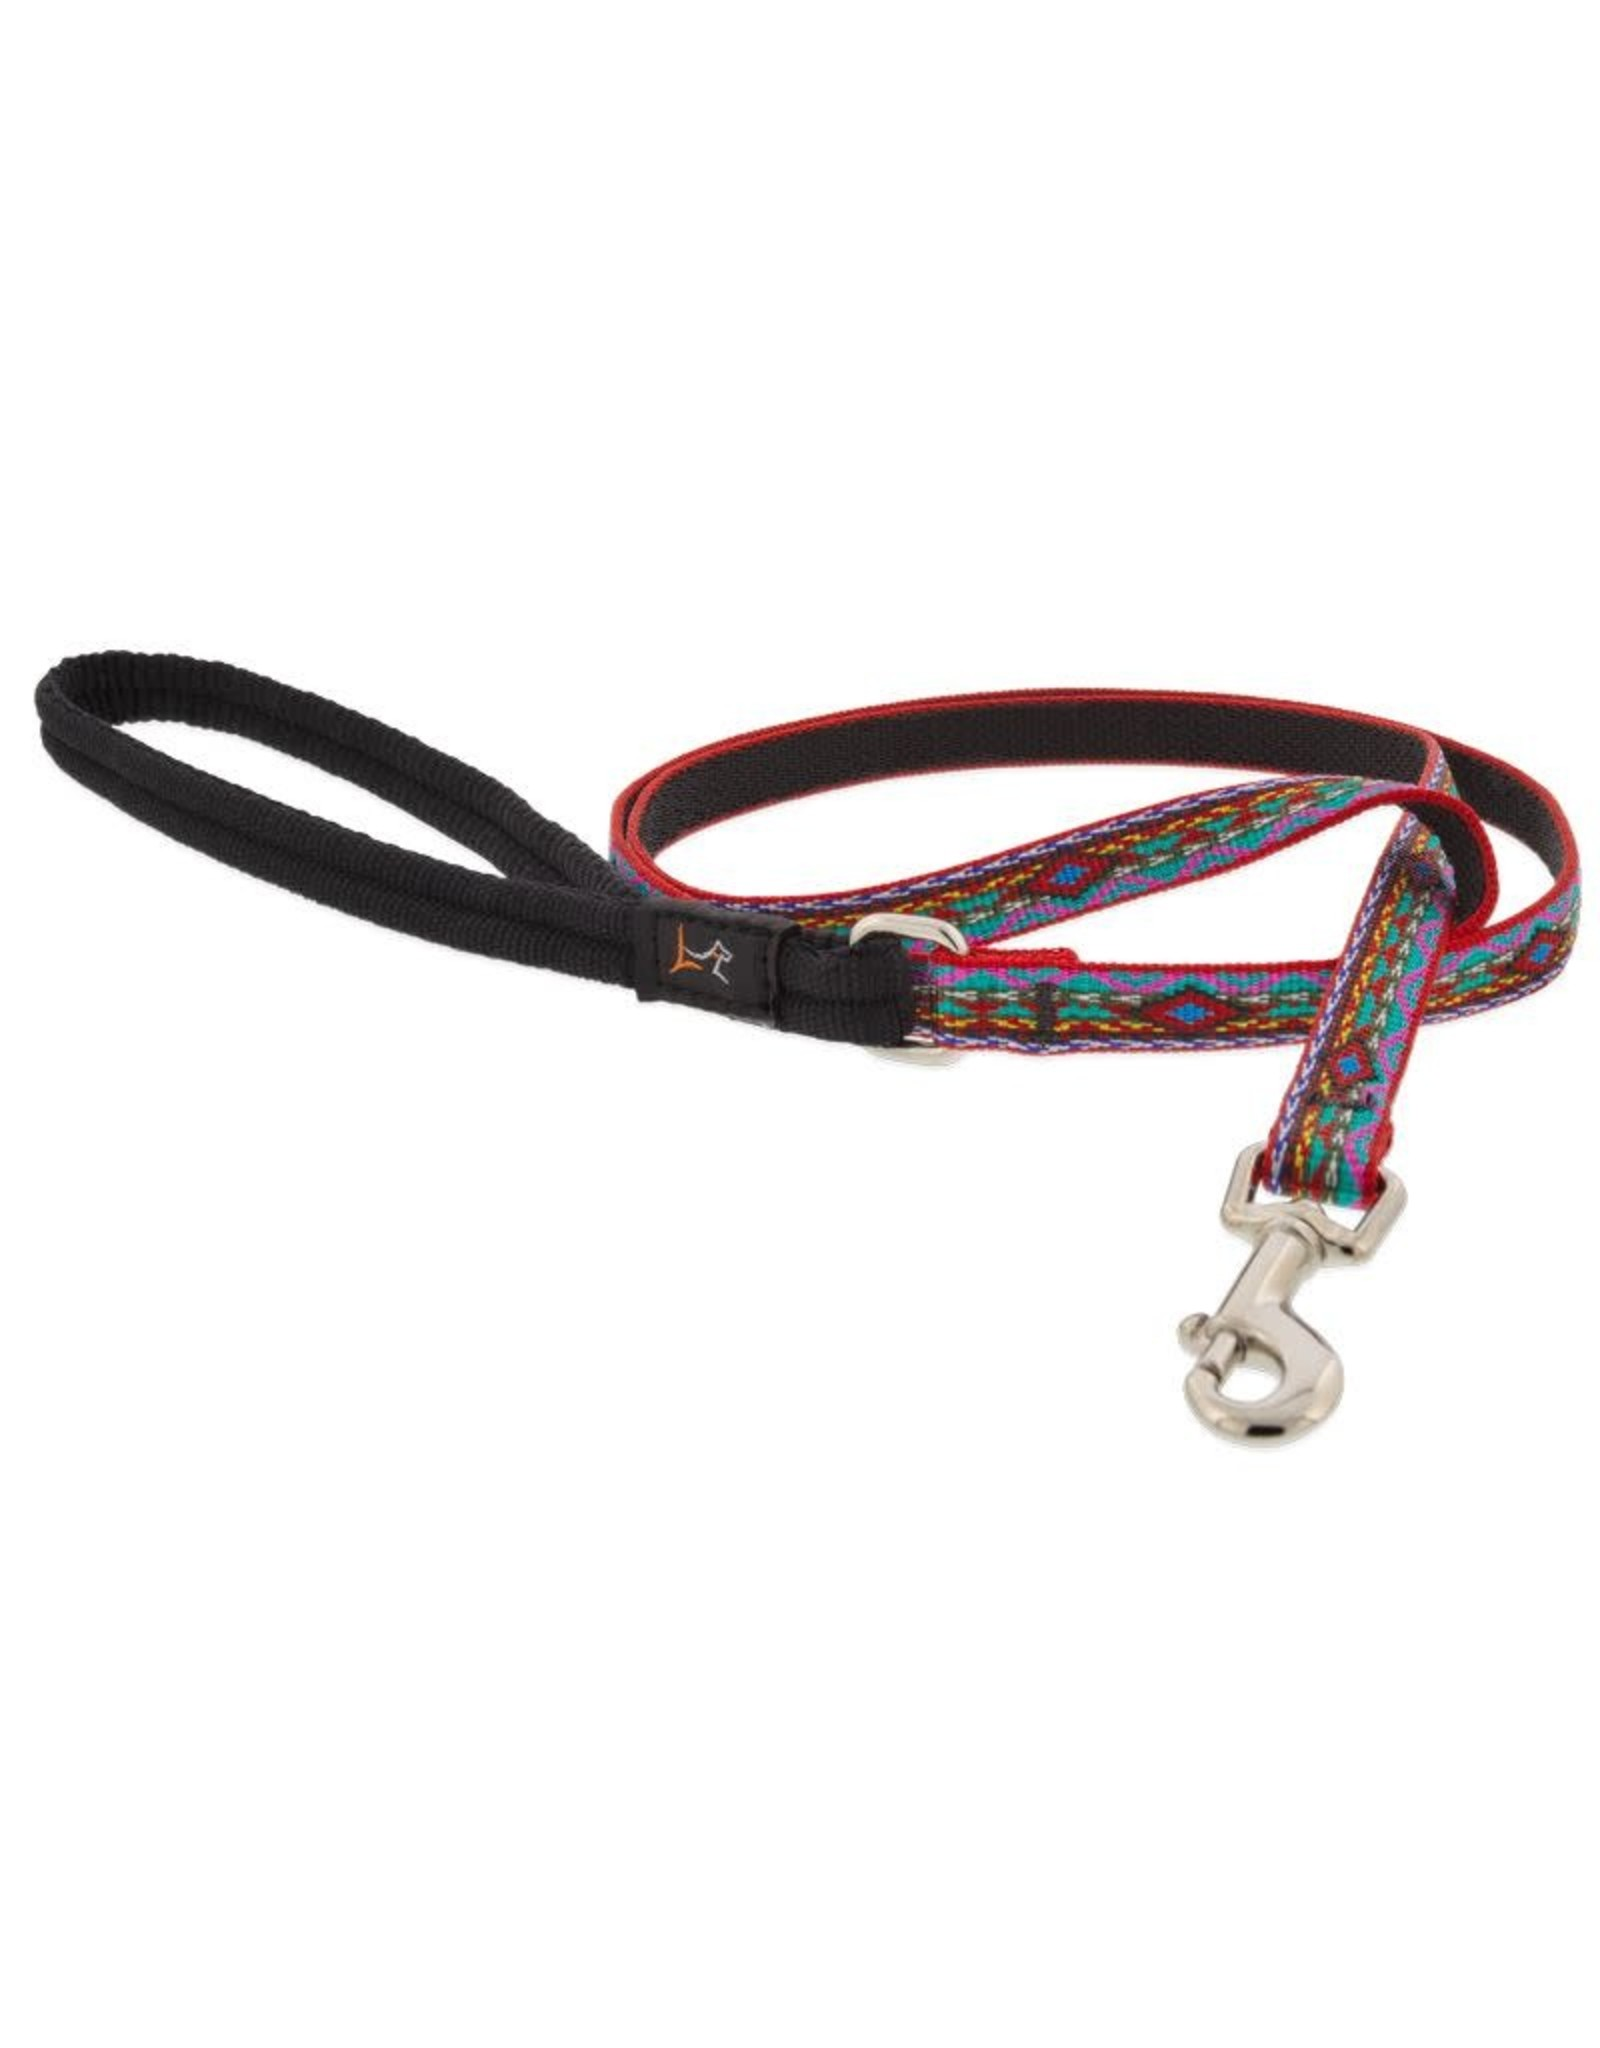 Lupine Lupine El Paso Leash: 1 in wide, 6 ft